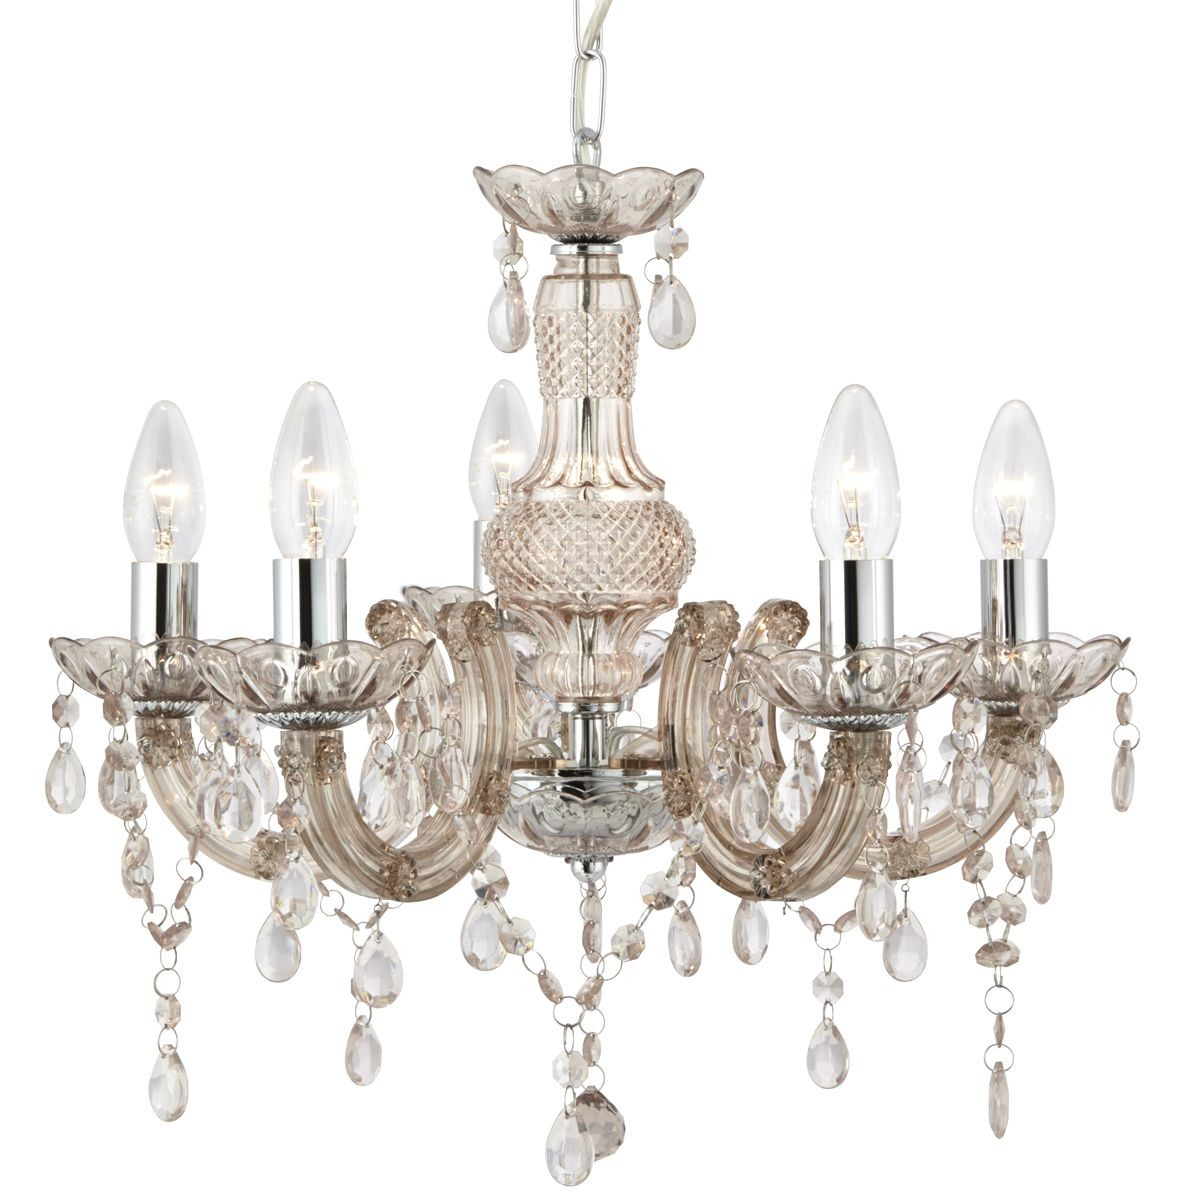 Marie Therese Wall Lights Chrome : Marie Therese Ceiling Light - 5 Light, Chrome, Mink Glass